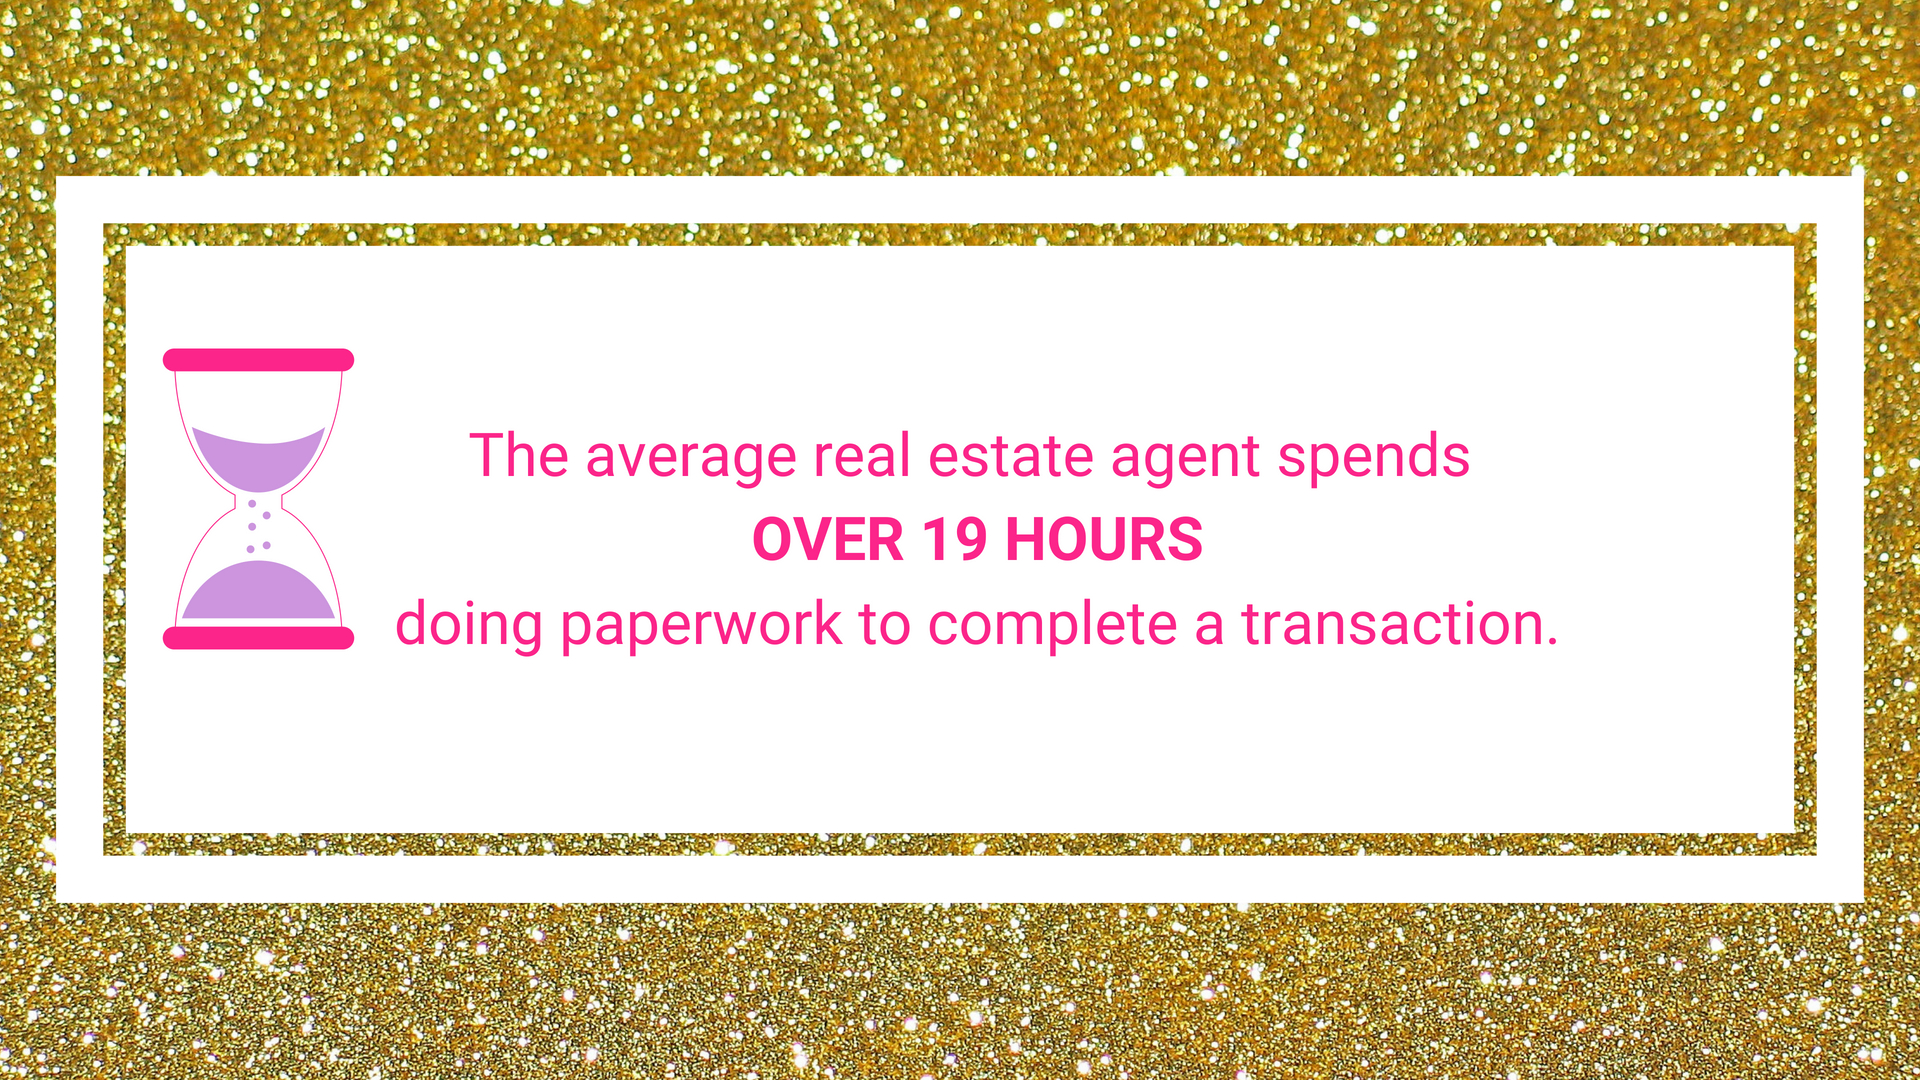 CeCe Hampton's transaction coordinator serrvices save real estate agents an average of 19 hours of paperwork per transaction.